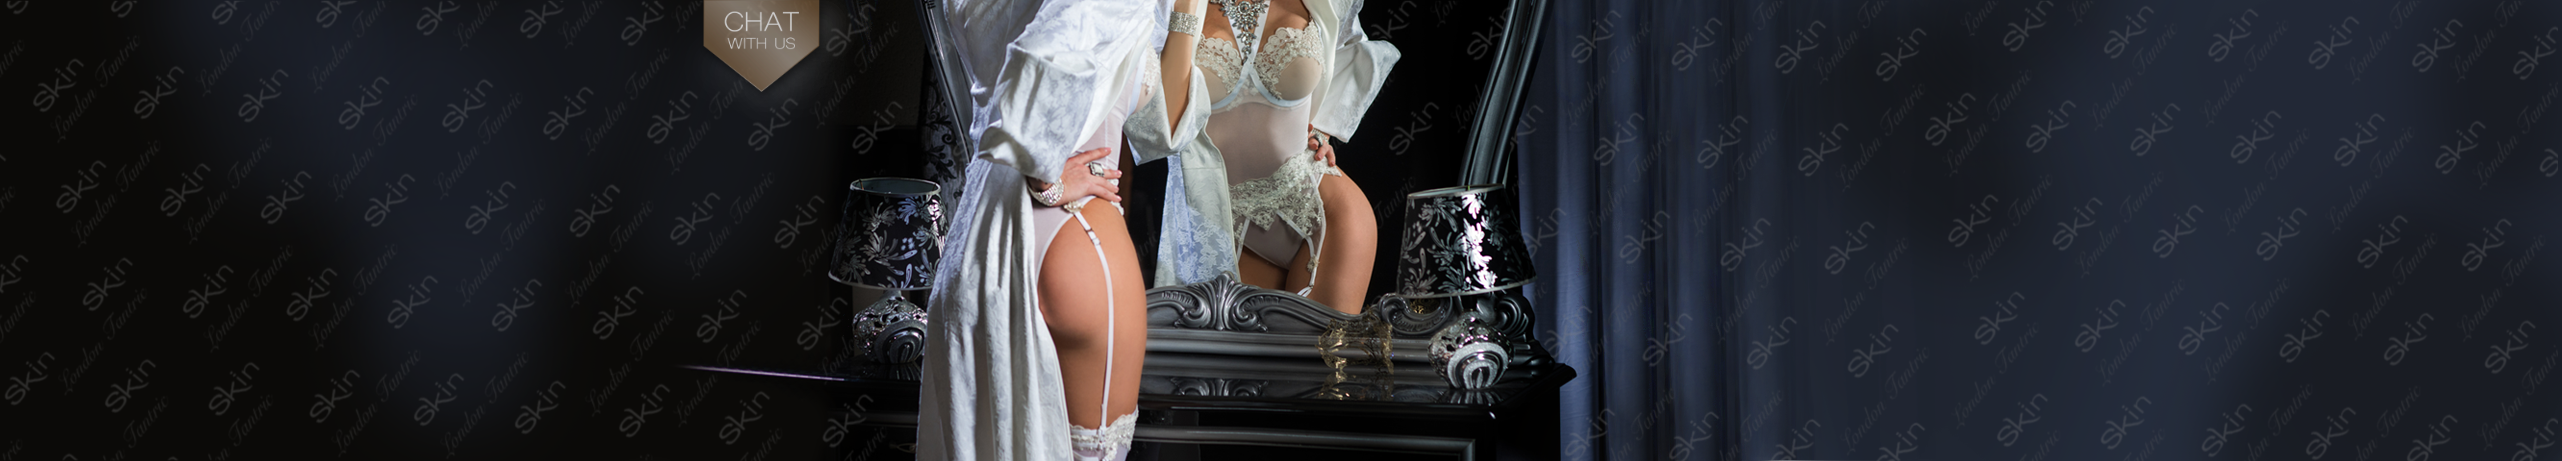 tantric massage london girls